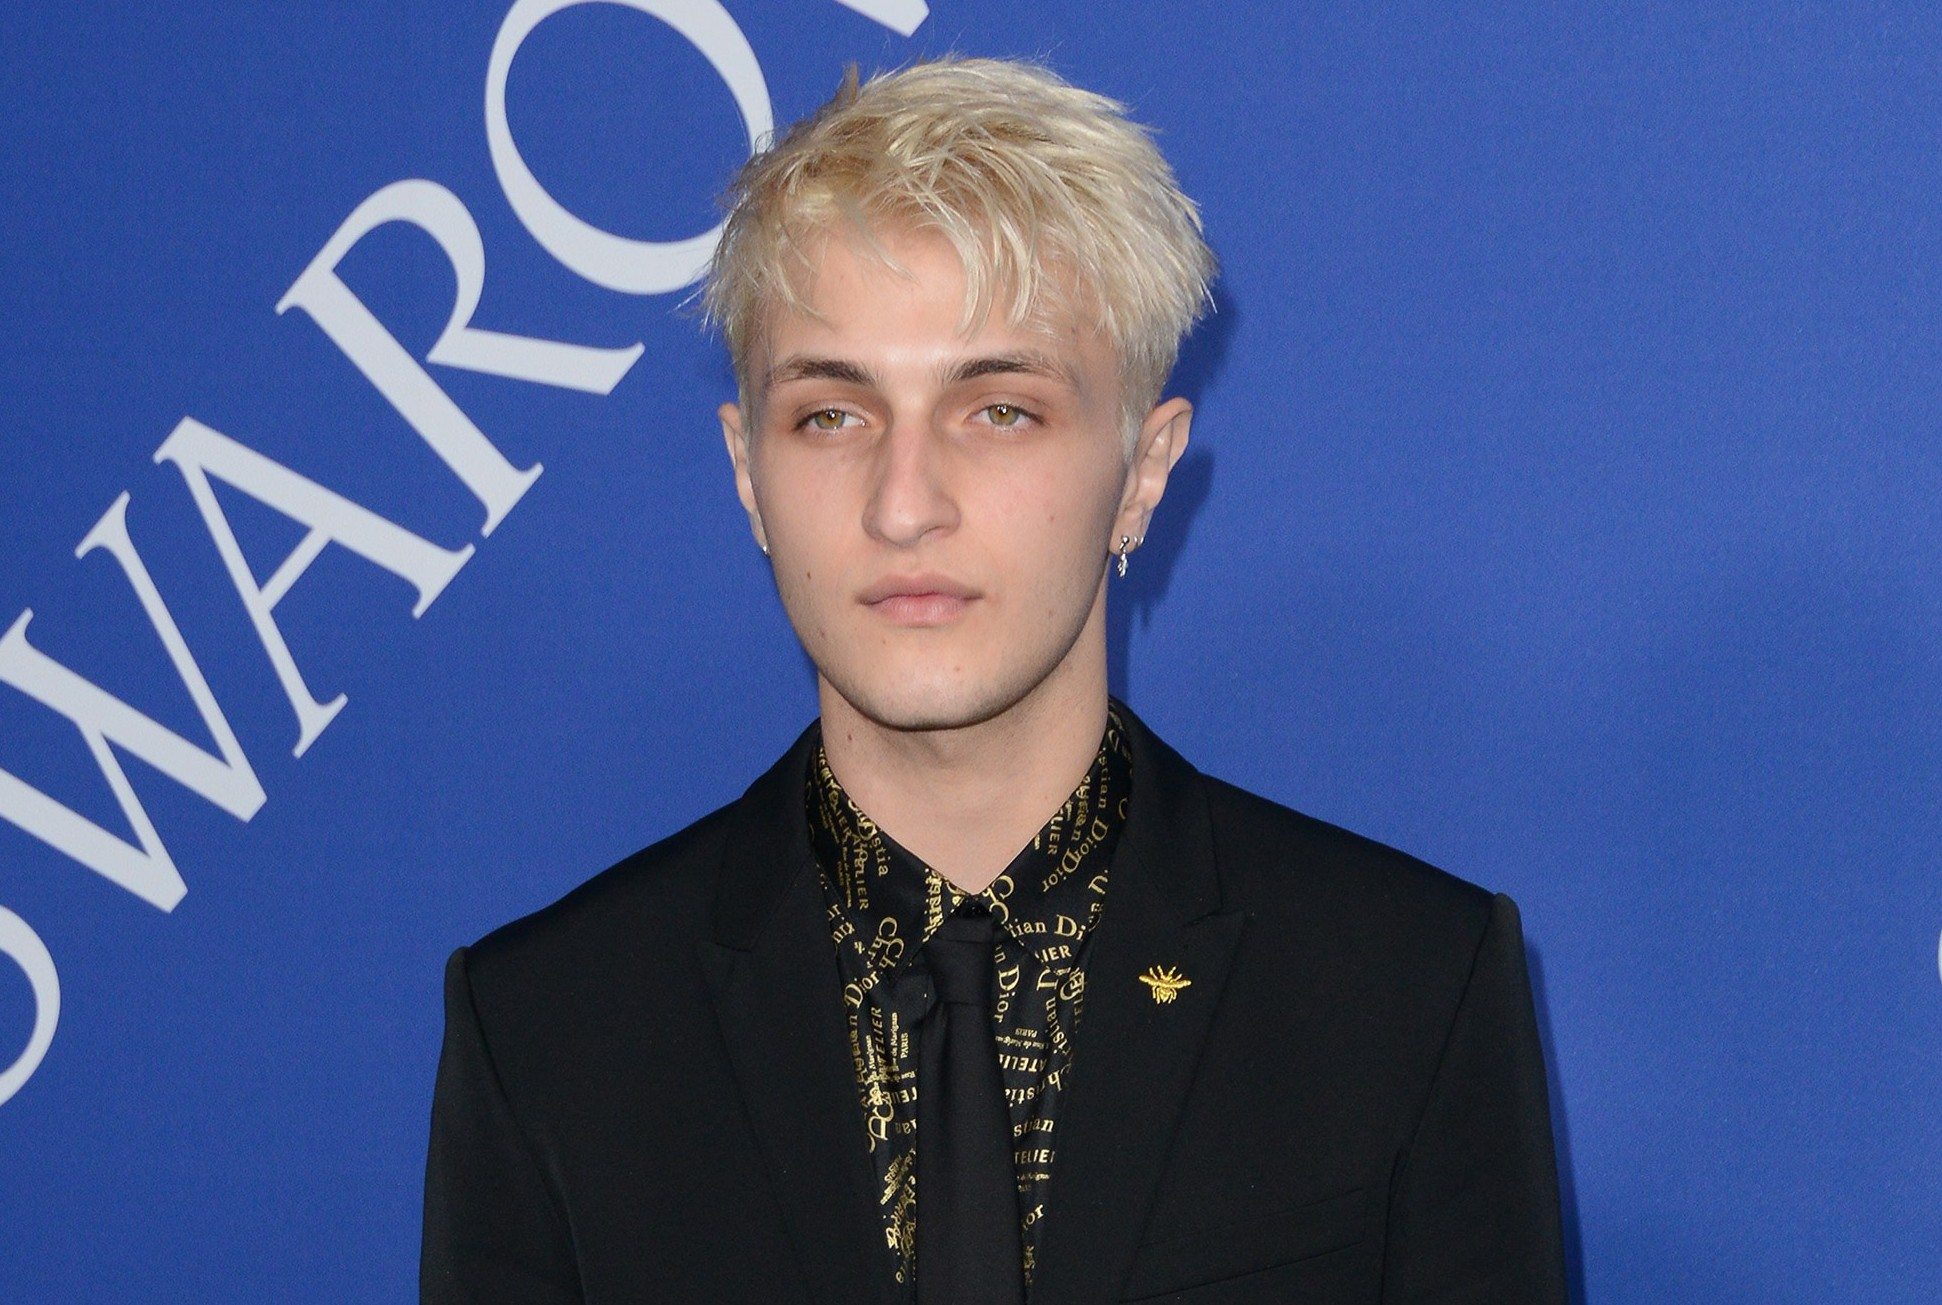 Besides the fact that he has joined the list of Kenda Jenner's many loves and hookups, what else do we know about Anwar Hadid? (Photo: WENN)